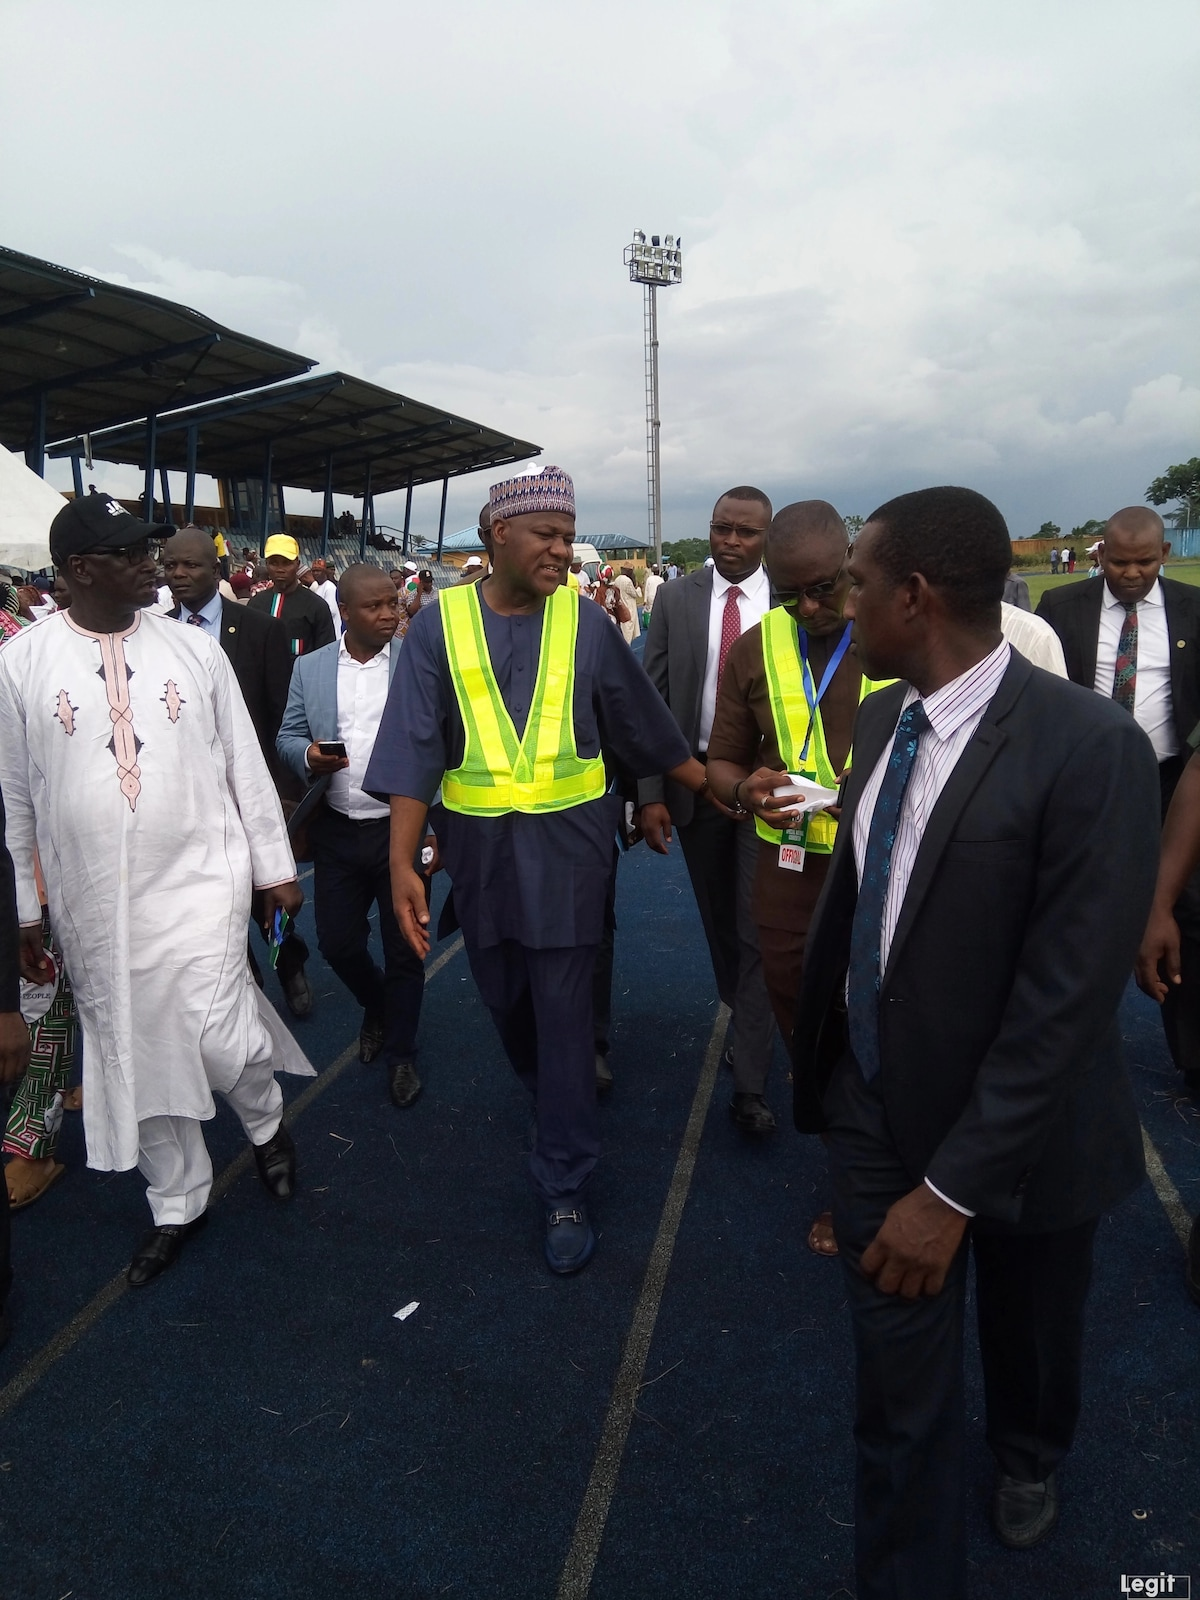 Yakubu Dogara arriving the PDP national convention holding in Port Harcourt. Source: Original